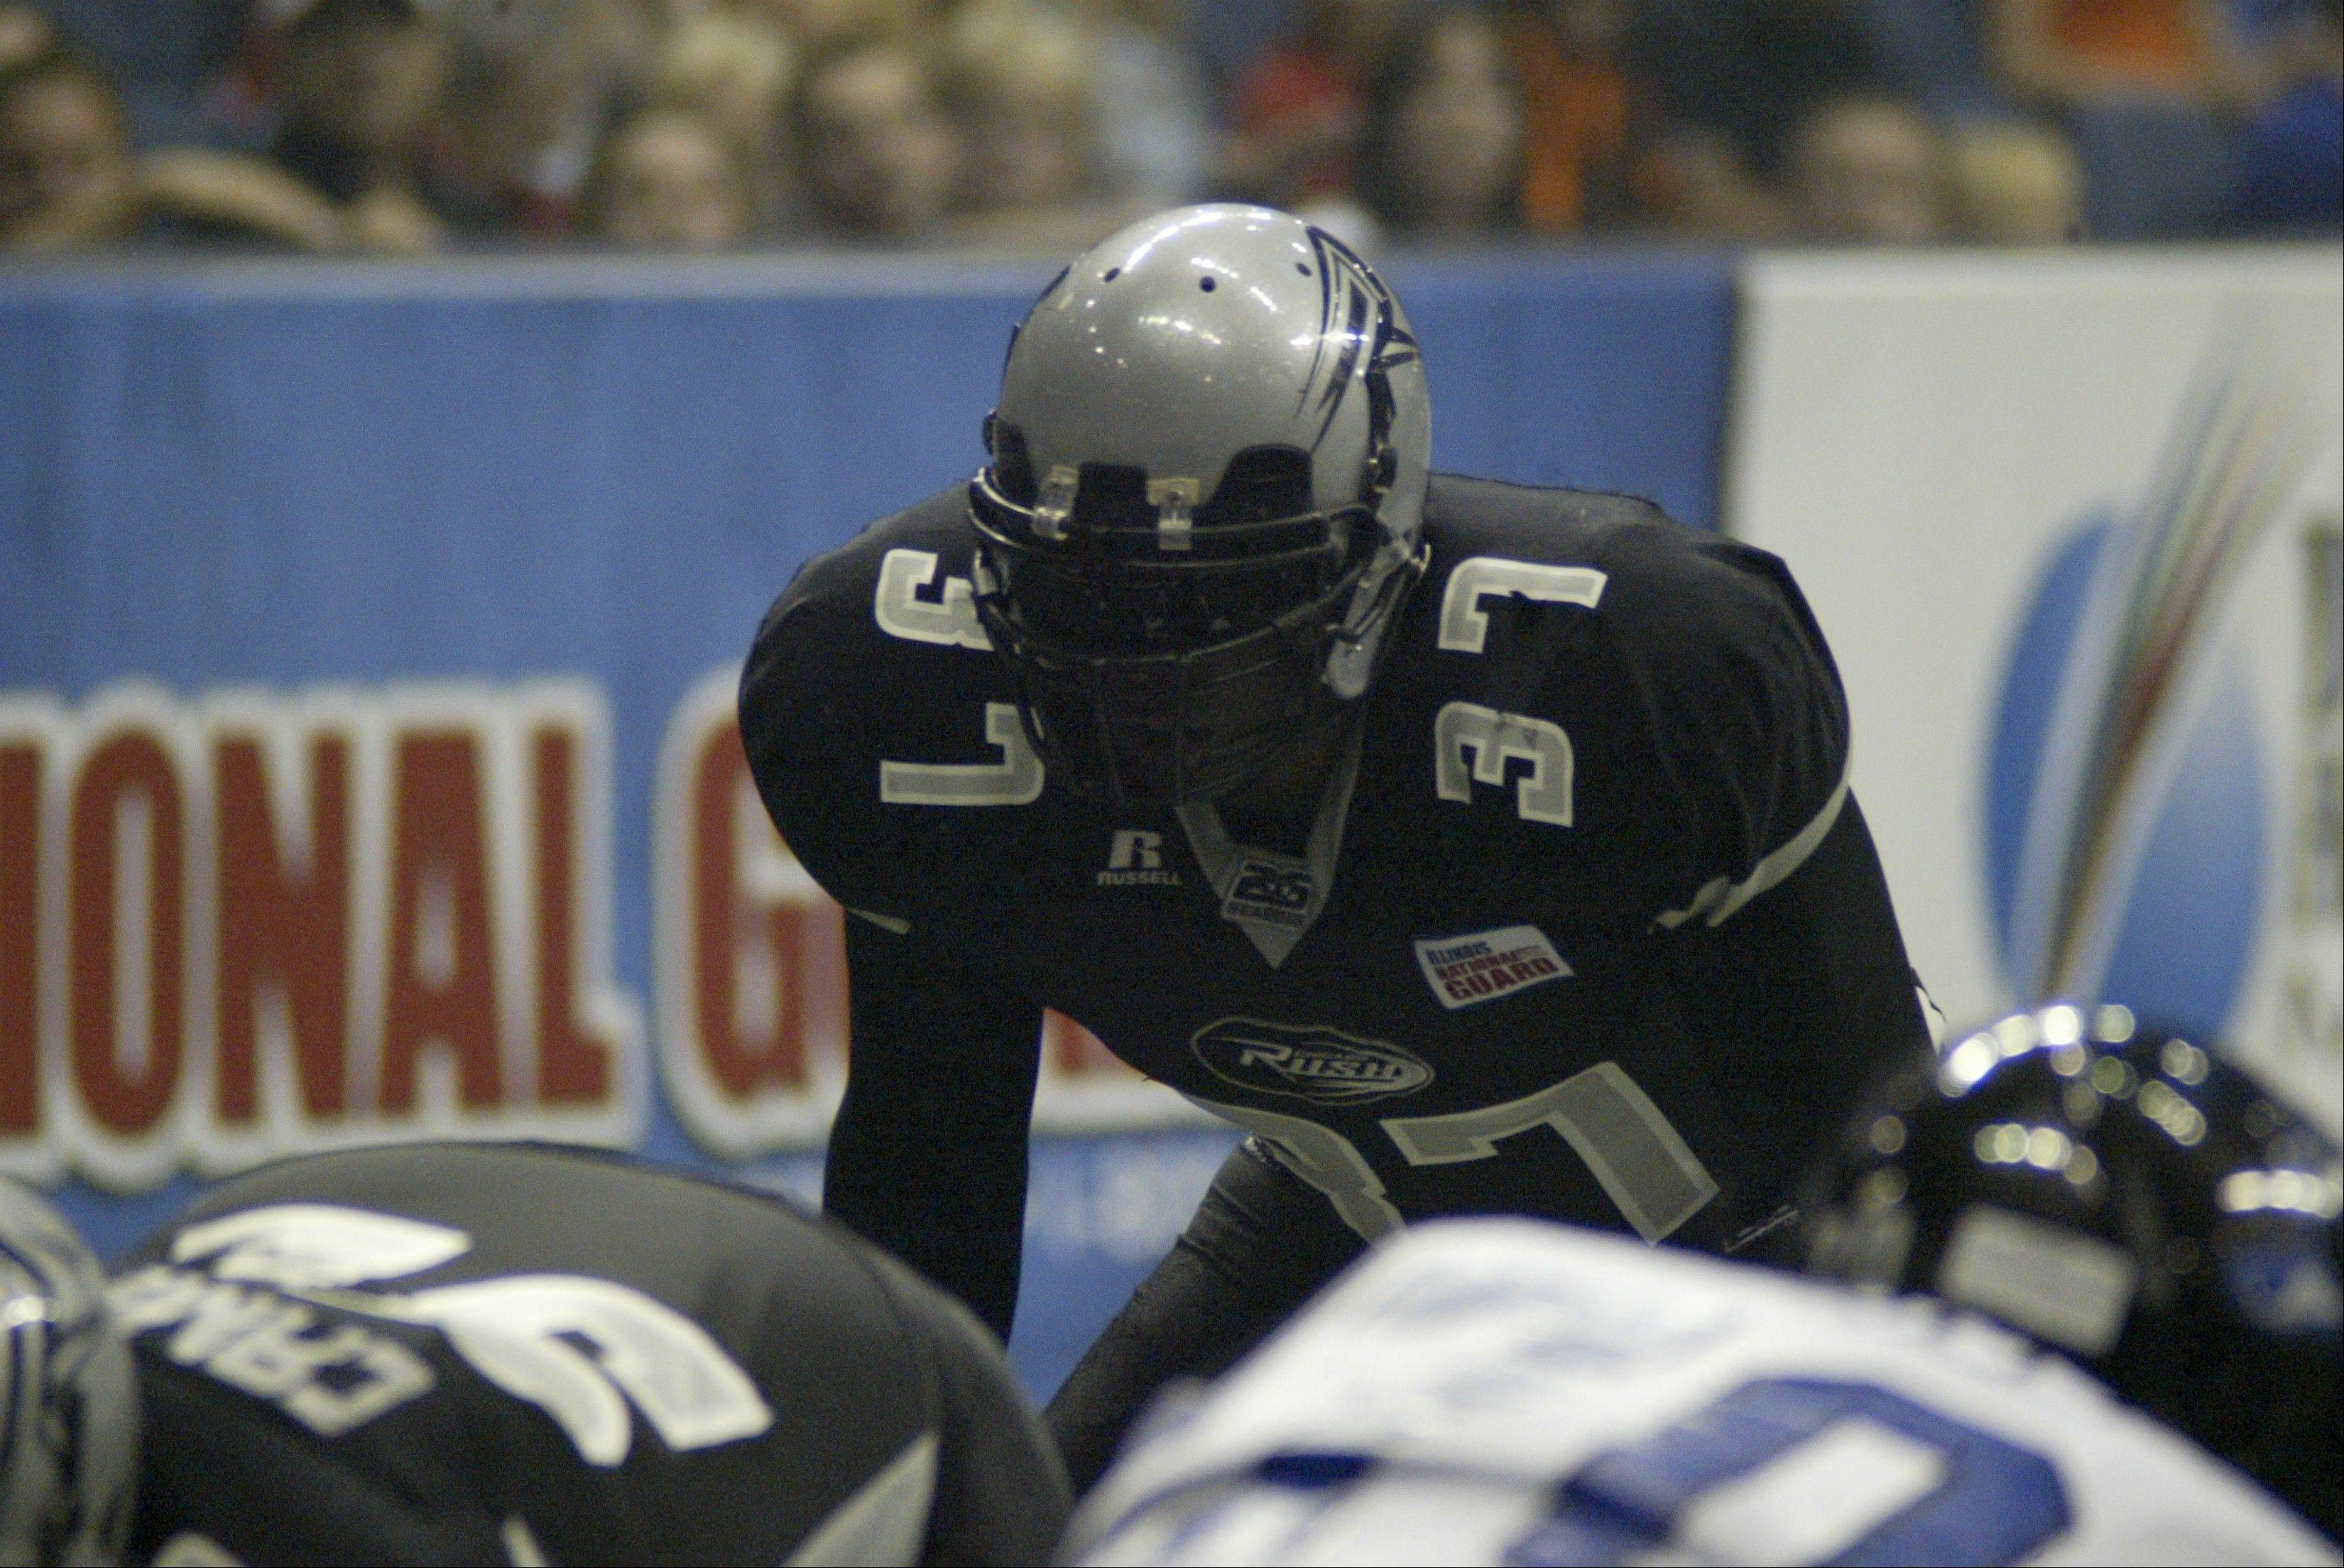 Linebacker Kevlin Morris returned an interception for a touchdown in the Chicago Rush's 62-27 win over the Georgia Force last weekend.